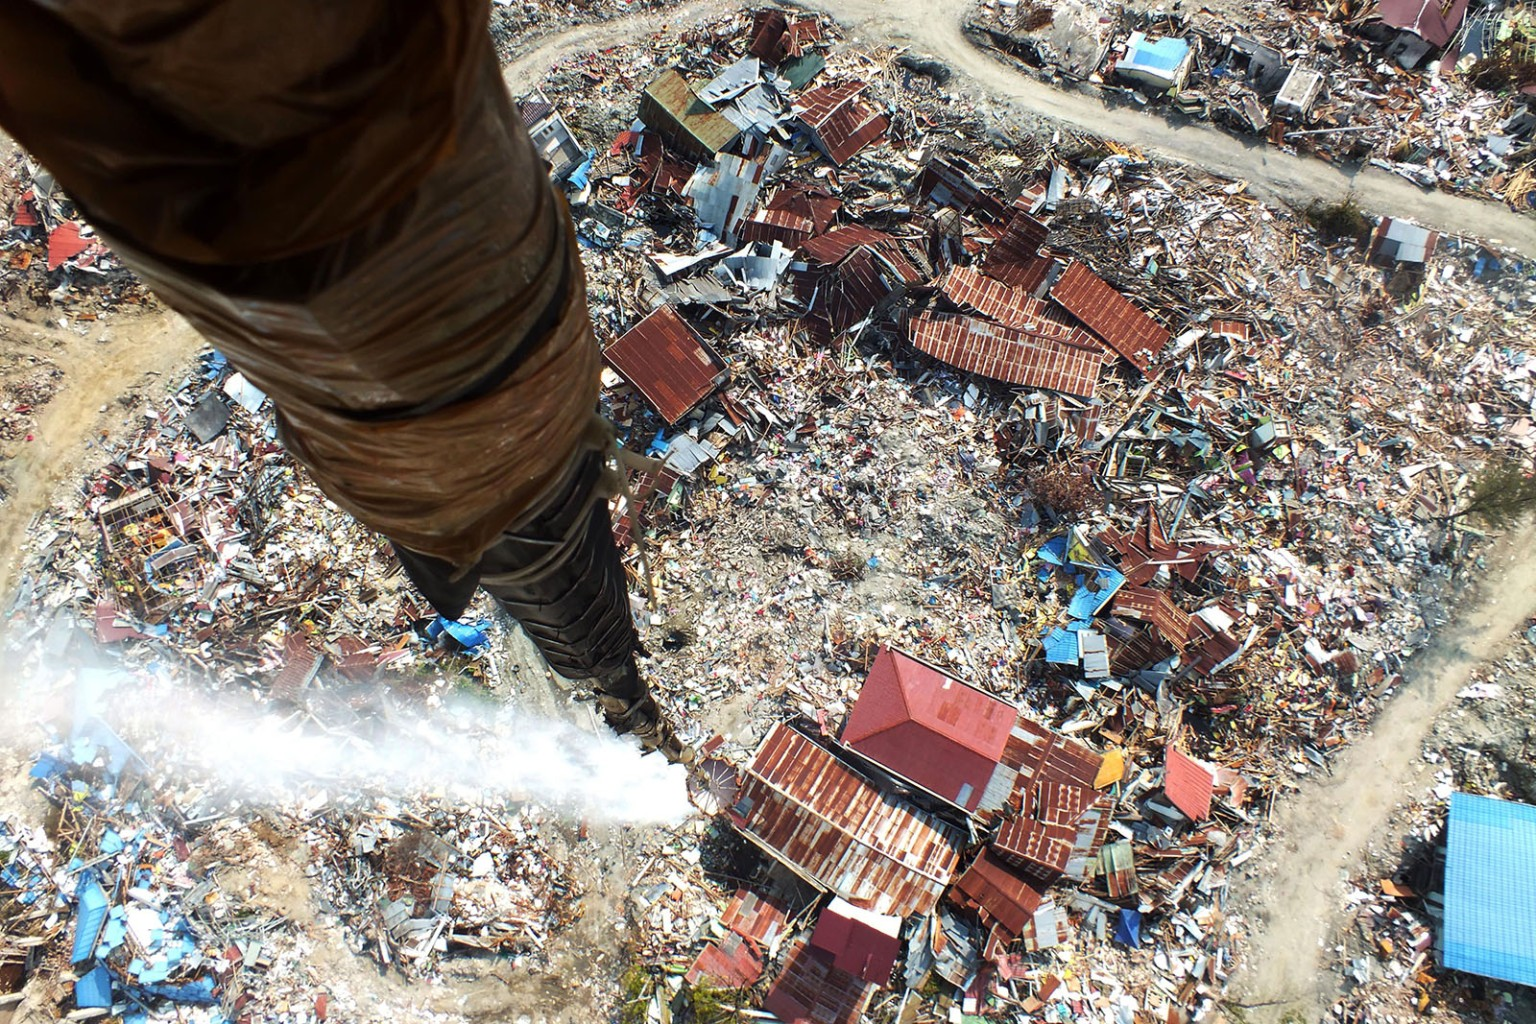 Disinfectant is released over Palu, Indonesia, on Oct. 14 in an attempt to sterilize the area affected by liquefaction in the Sept. 28 earthquake and where thousands are still feared buried. MUHAMMAD RIFKI/AFP/Getty Images